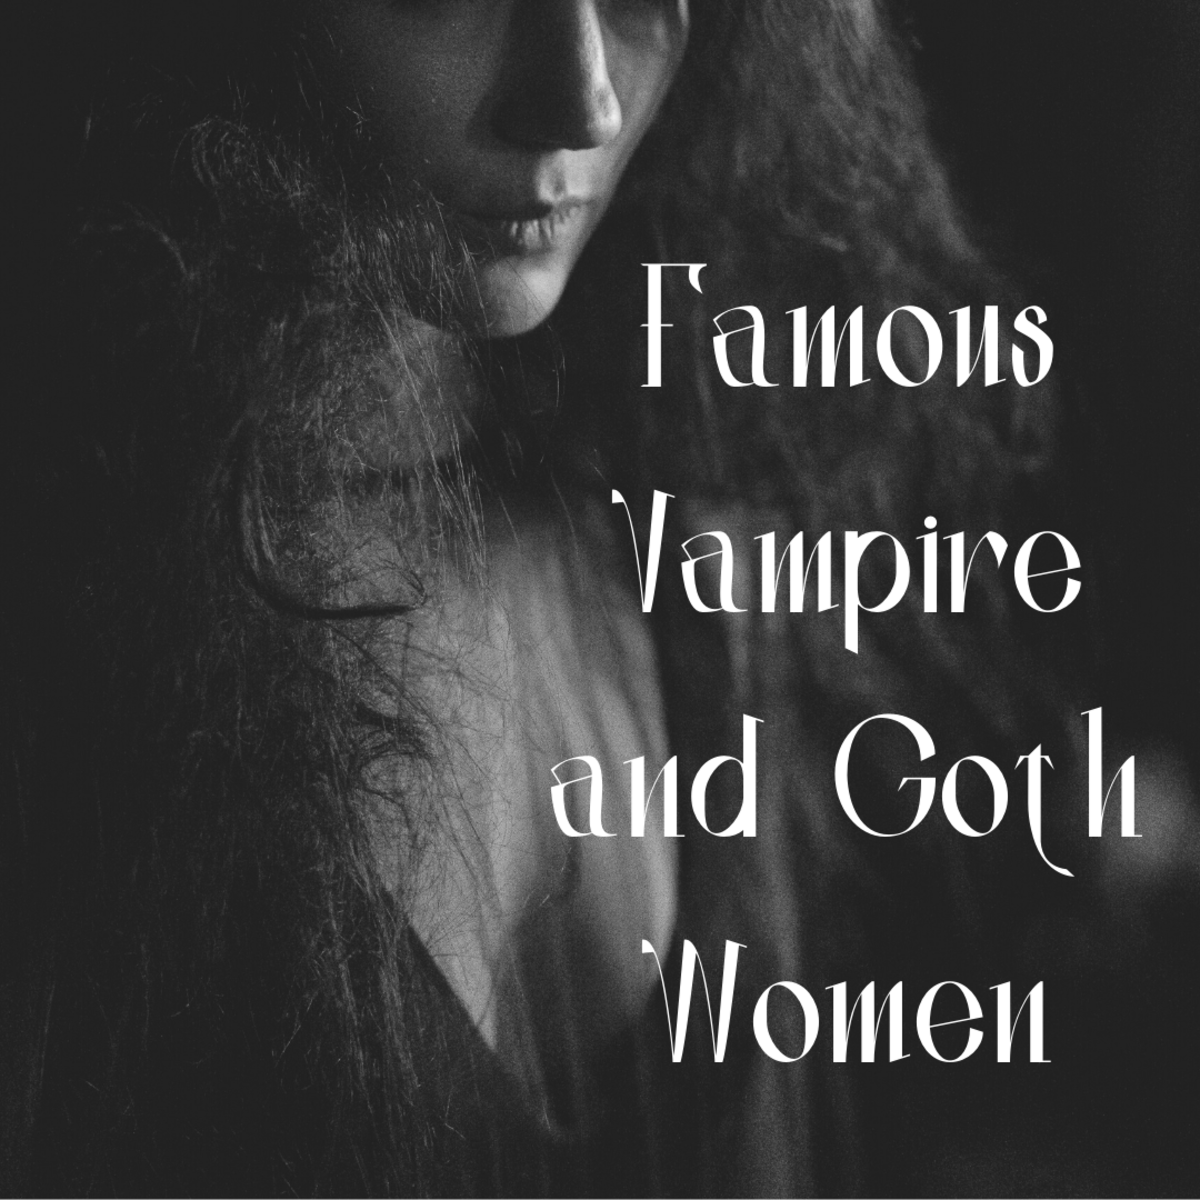 This list is a guide to some of the best female vampires and goth women in movies and television.